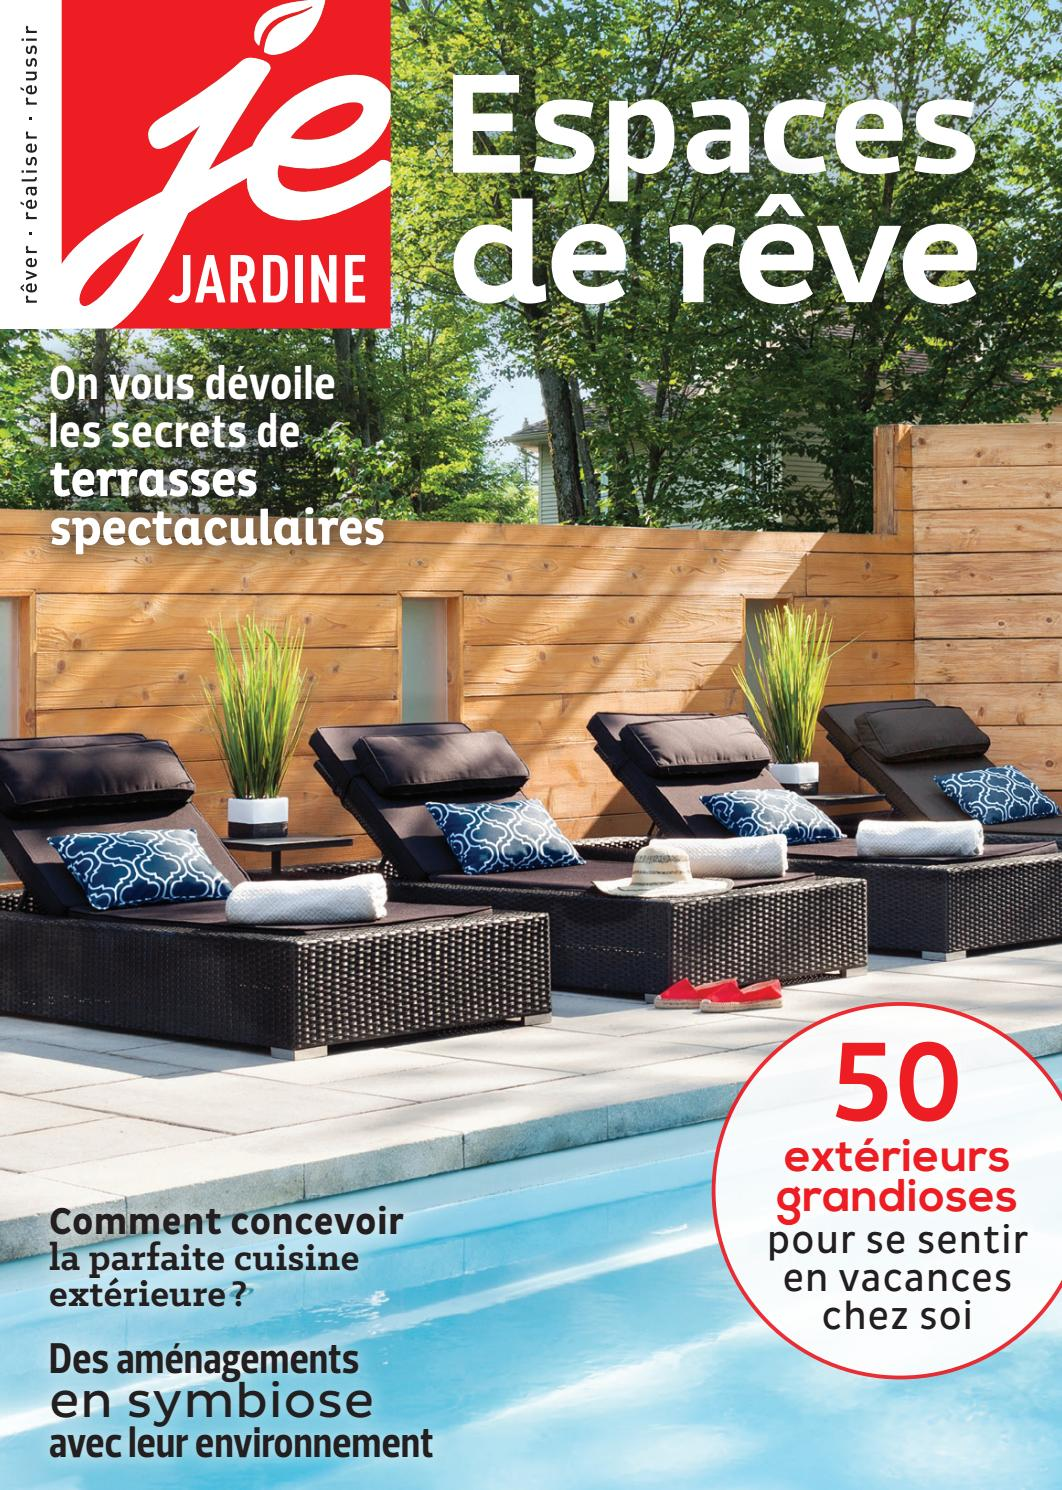 Chaise Suspendue Club Piscine Je Jardine Vol 02 No 04 By Éditions Pratico Pratiques Issuu